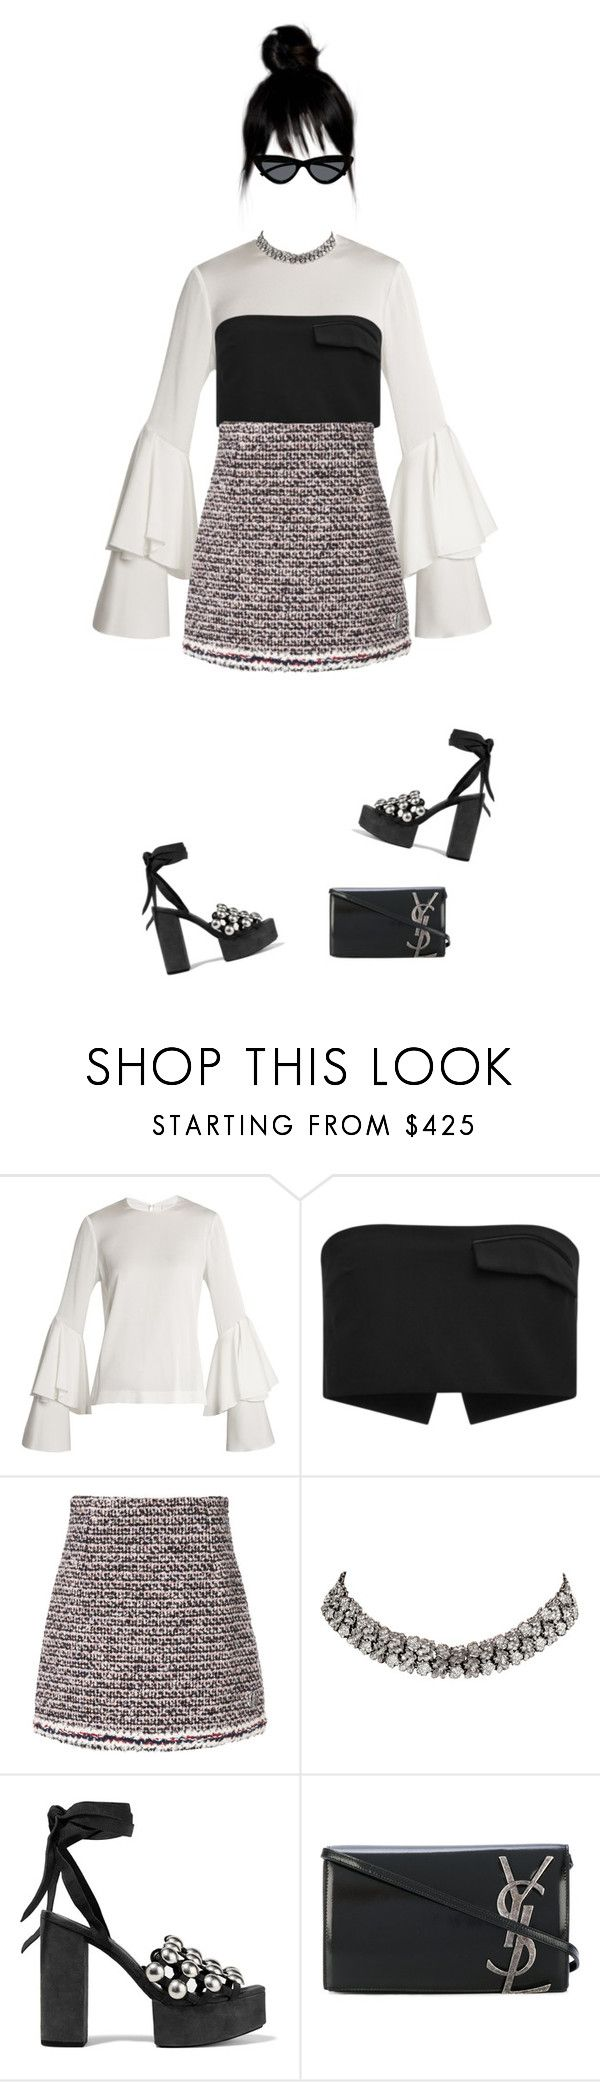 """""""rocker chic"""" by andy993011 on Polyvore featuring Galvan, Josh Goot, Moncler Gamme Rouge, Carrera y Carrera, Alexander Wang, Yves Saint Laurent and Le Specs"""